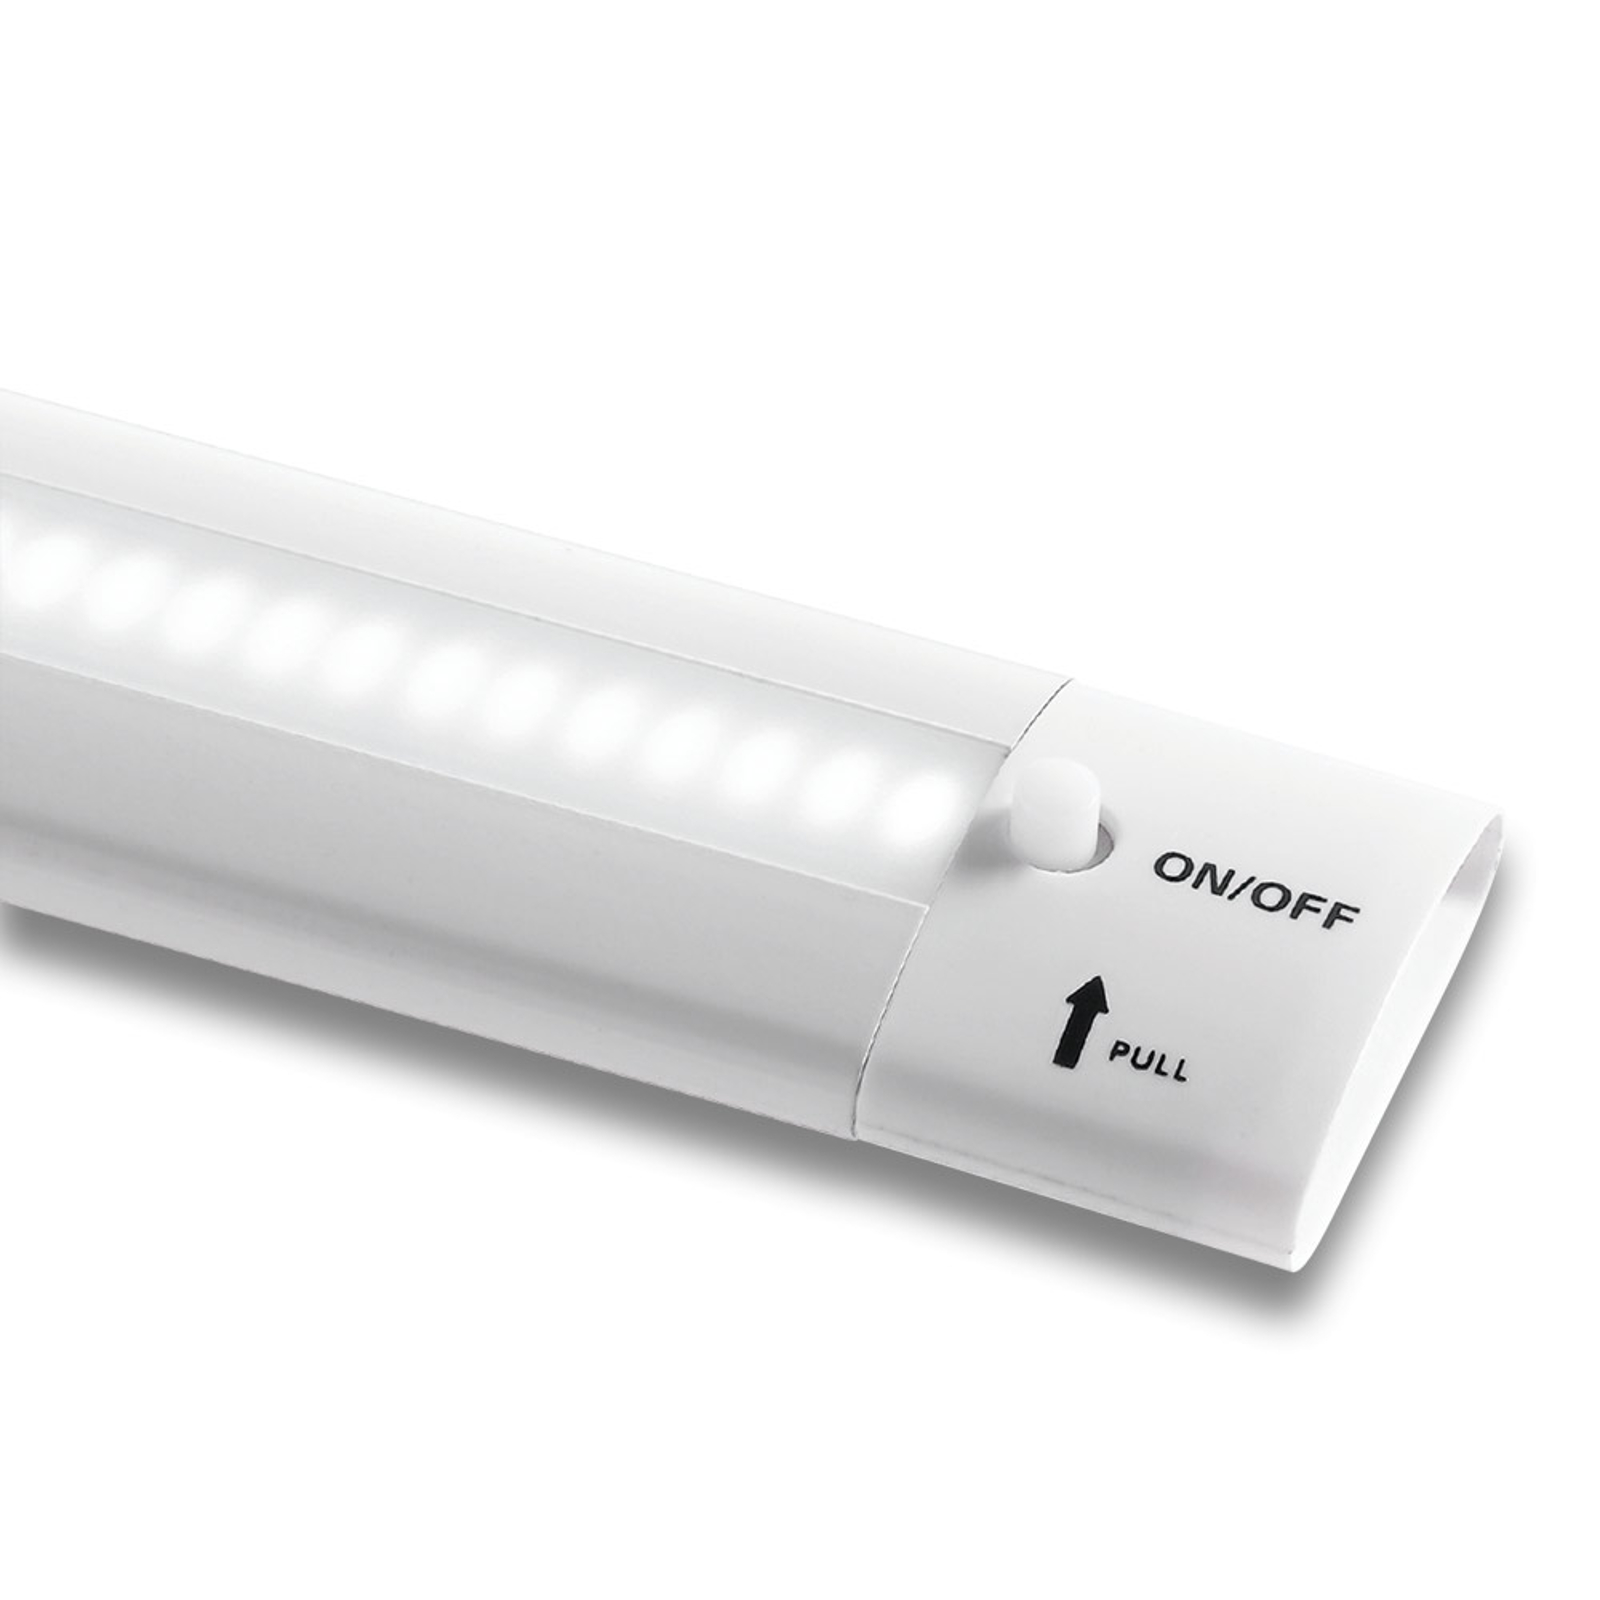 Applique sous meuble LED Galway 6690, 16 W, blanc